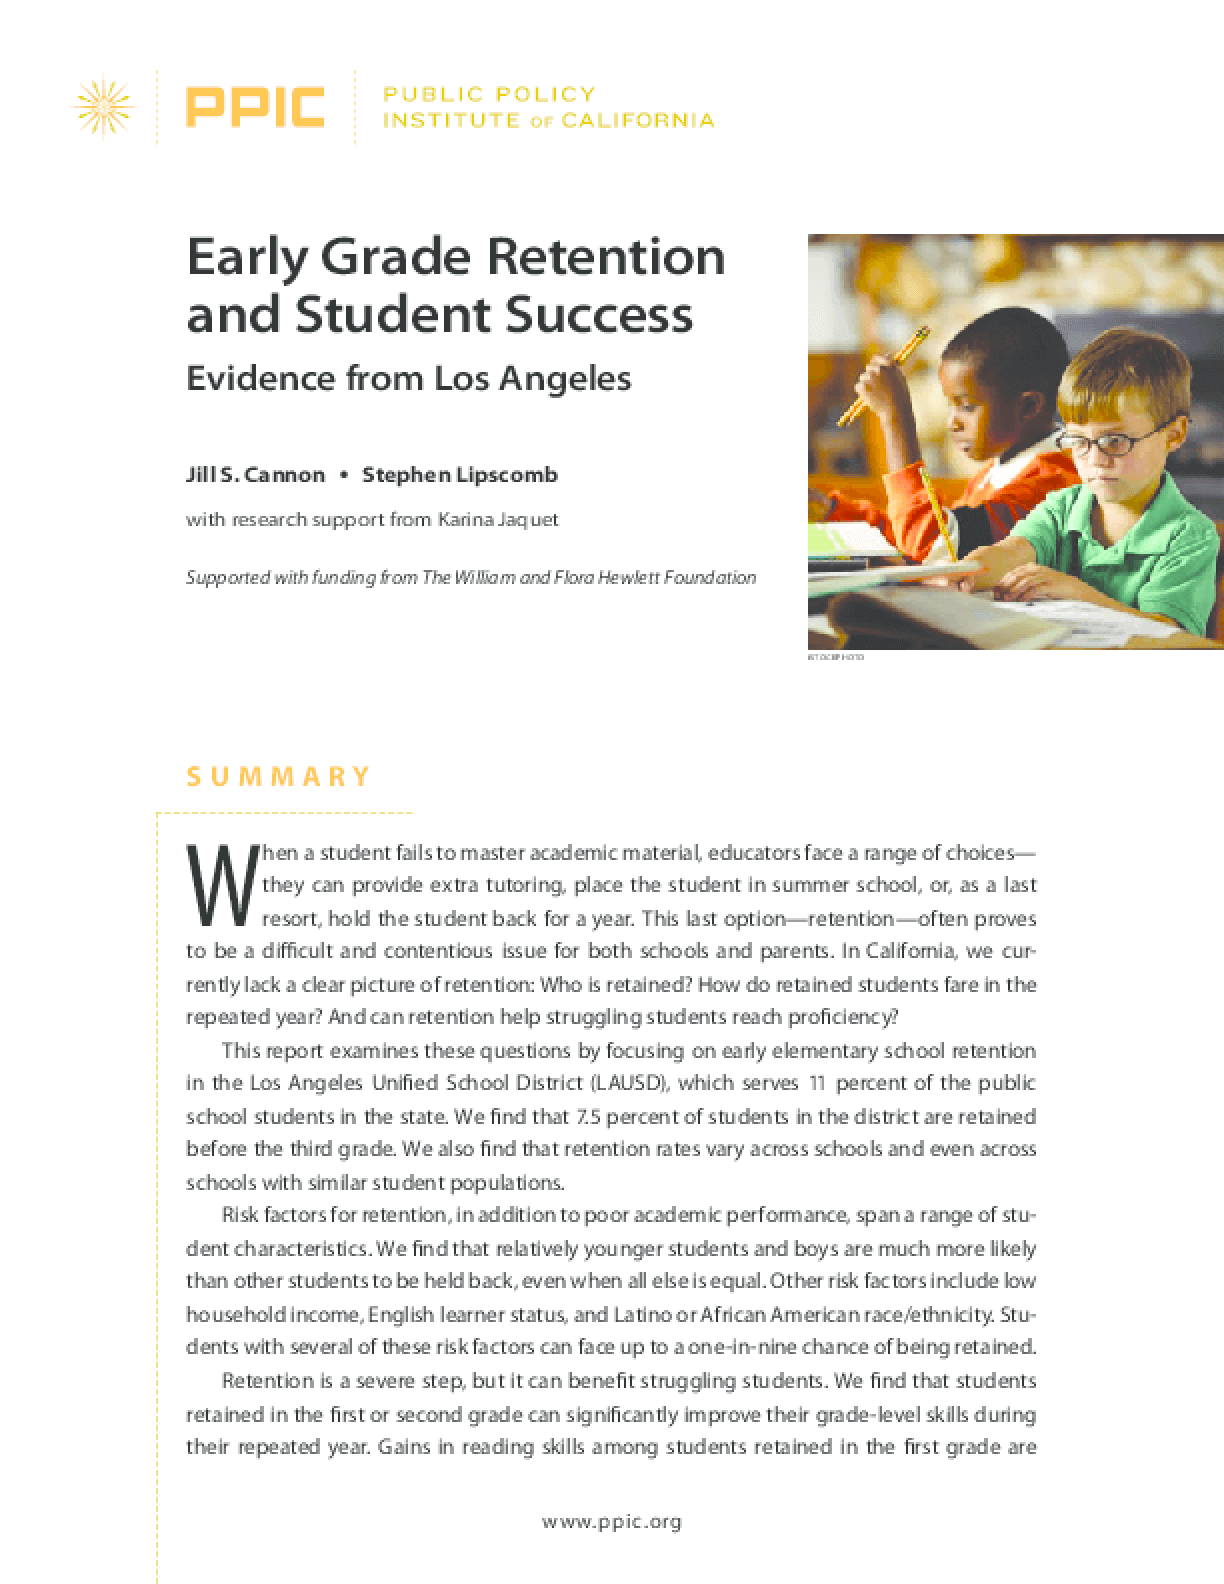 Early Grade Retention and Student Success: Evidence From Los Angeles